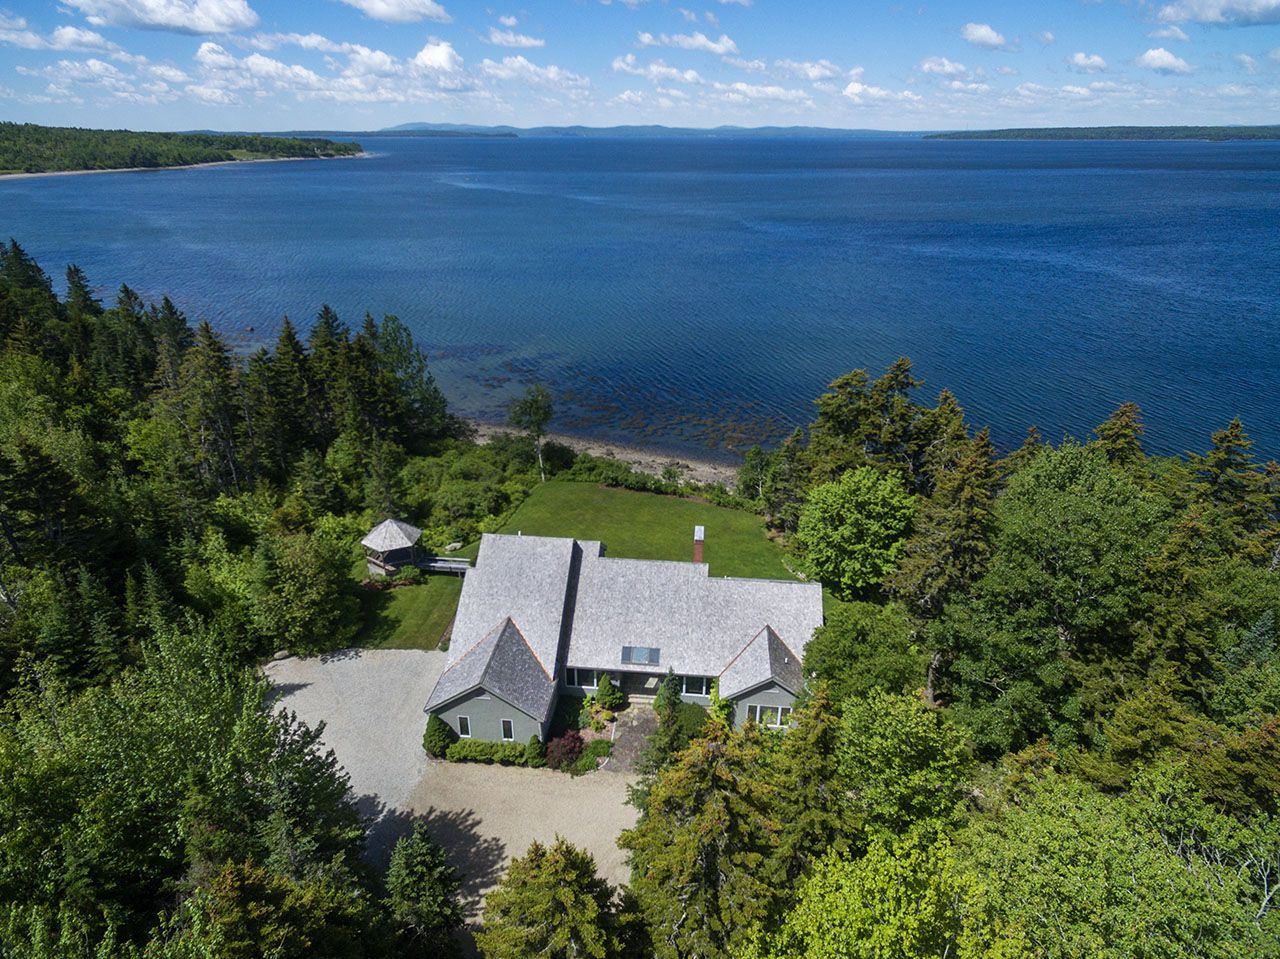 Single Family Home for Sale at Black Duck Estate 138 Black Duck Castine, Maine,04420 United States